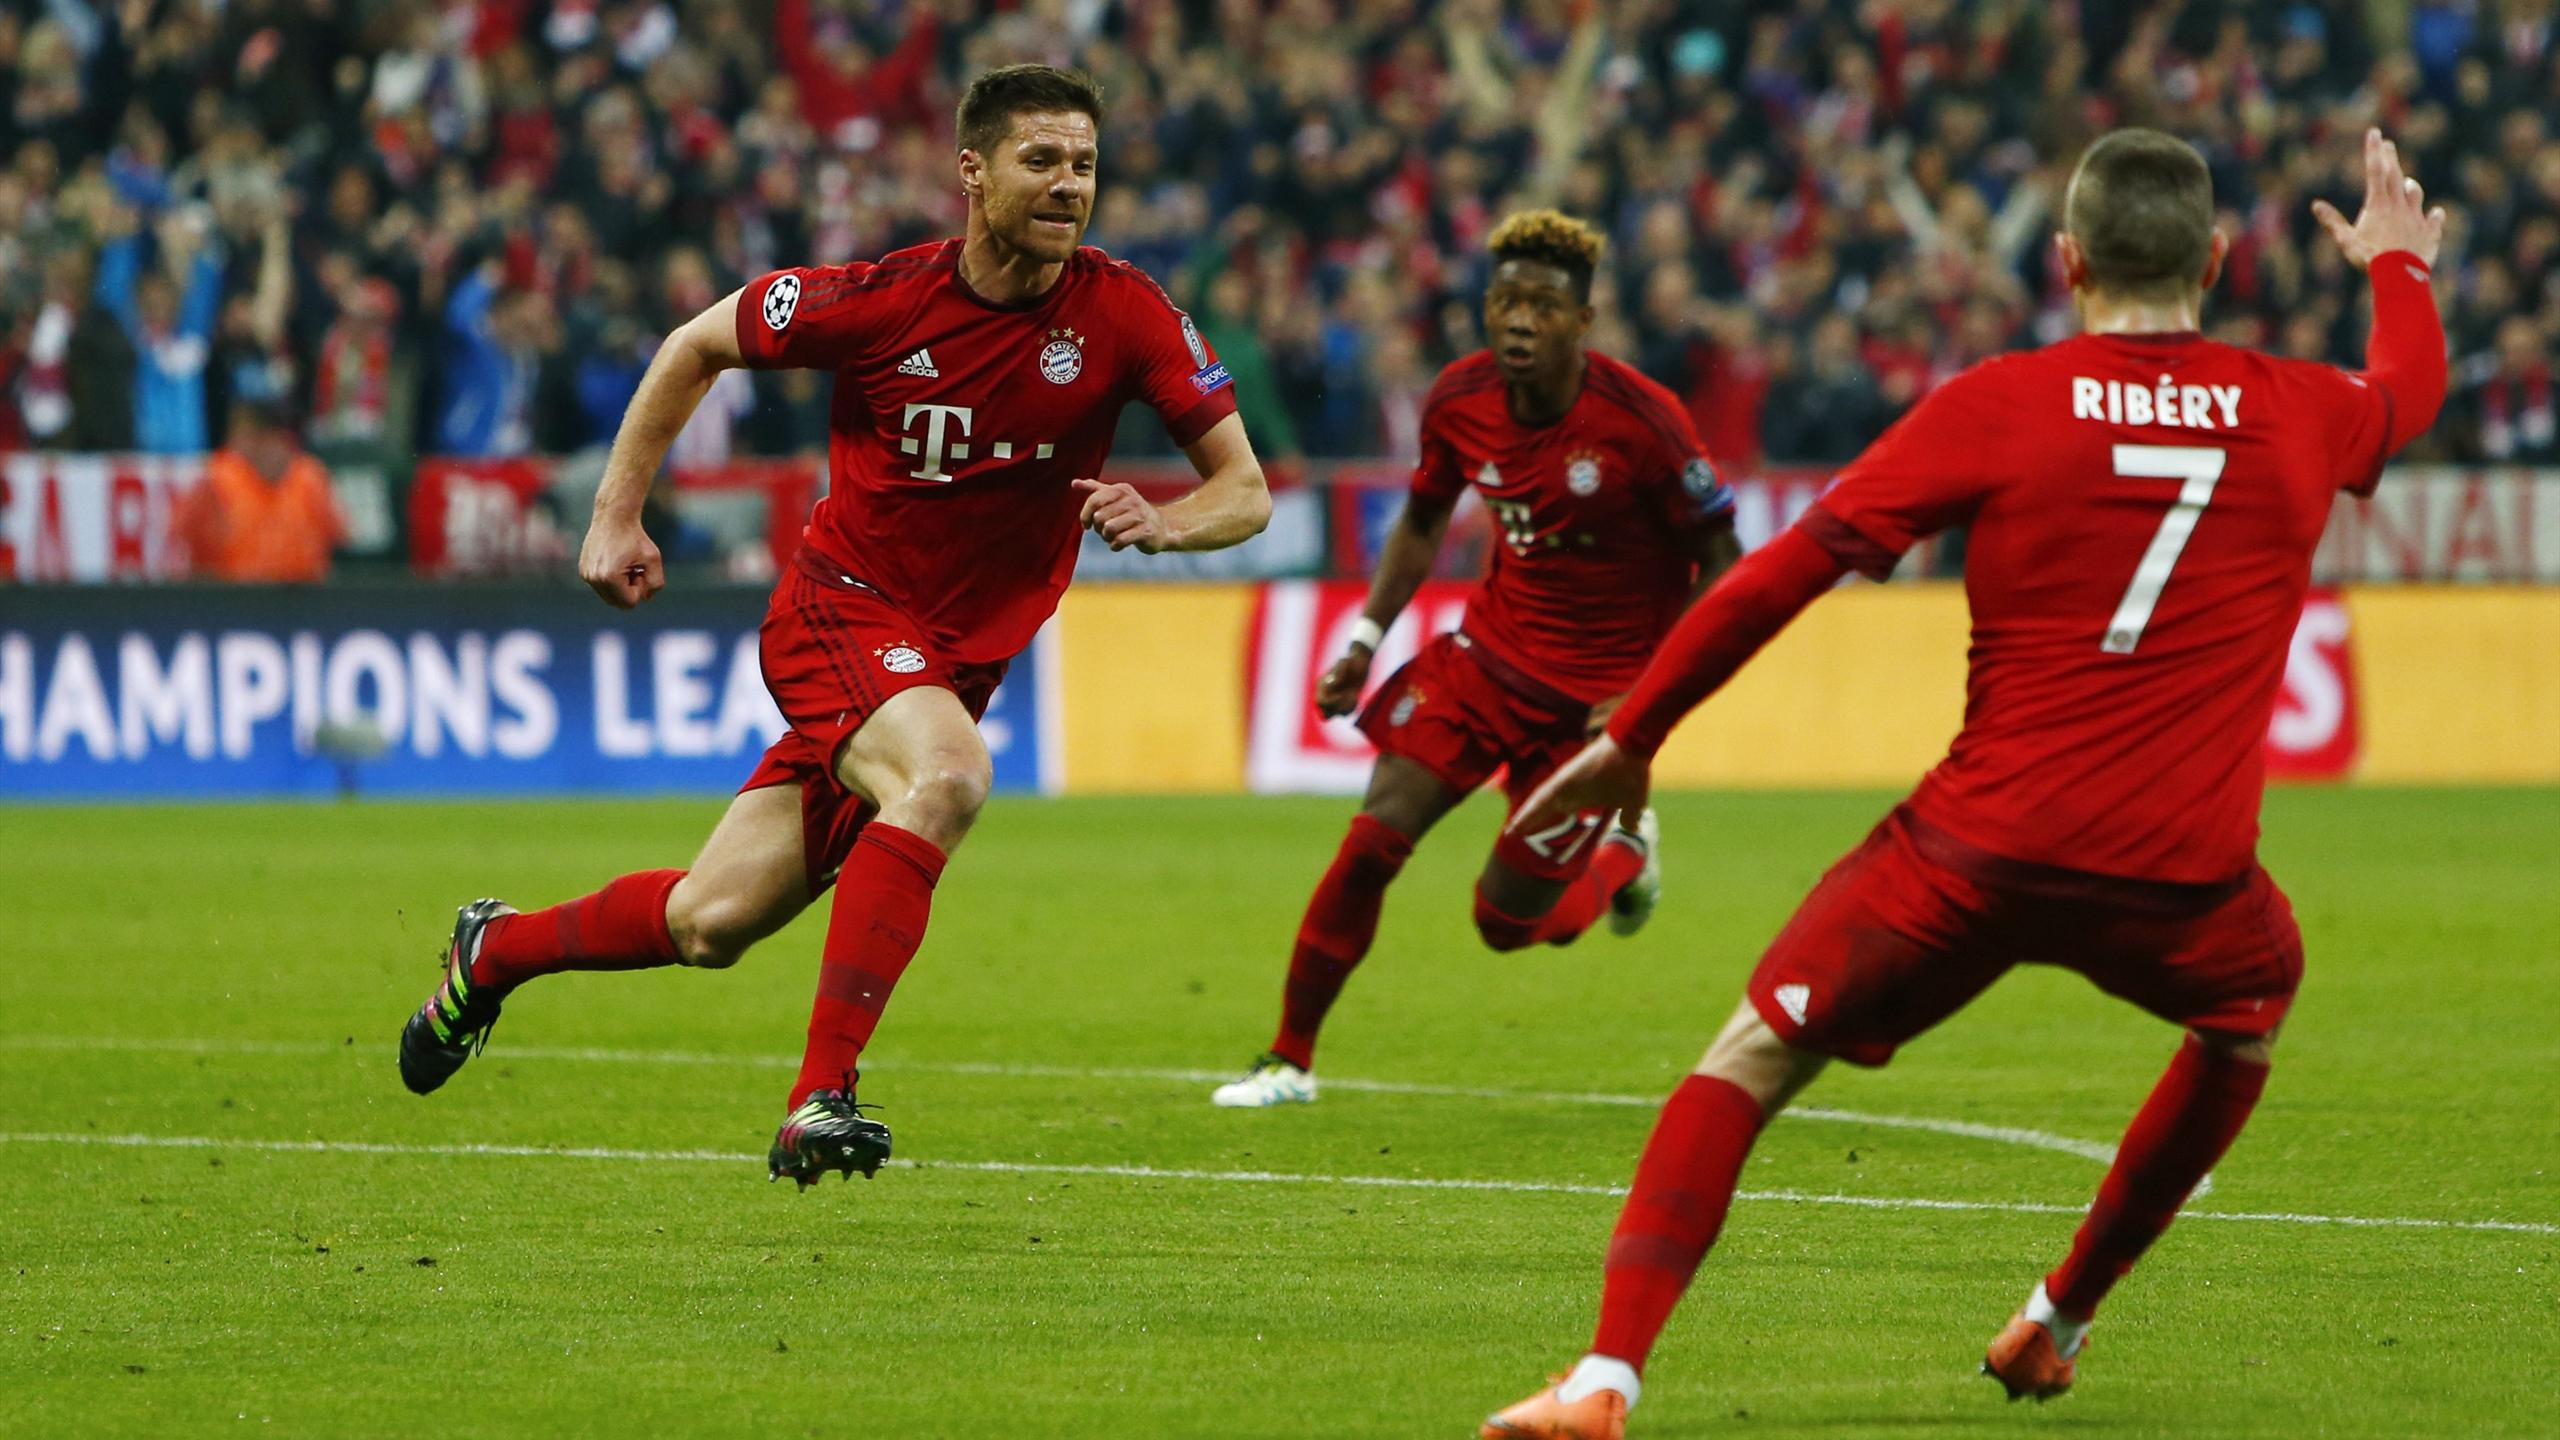 Xabi Alonso celebrates scoring the first goal for Bayern Munich